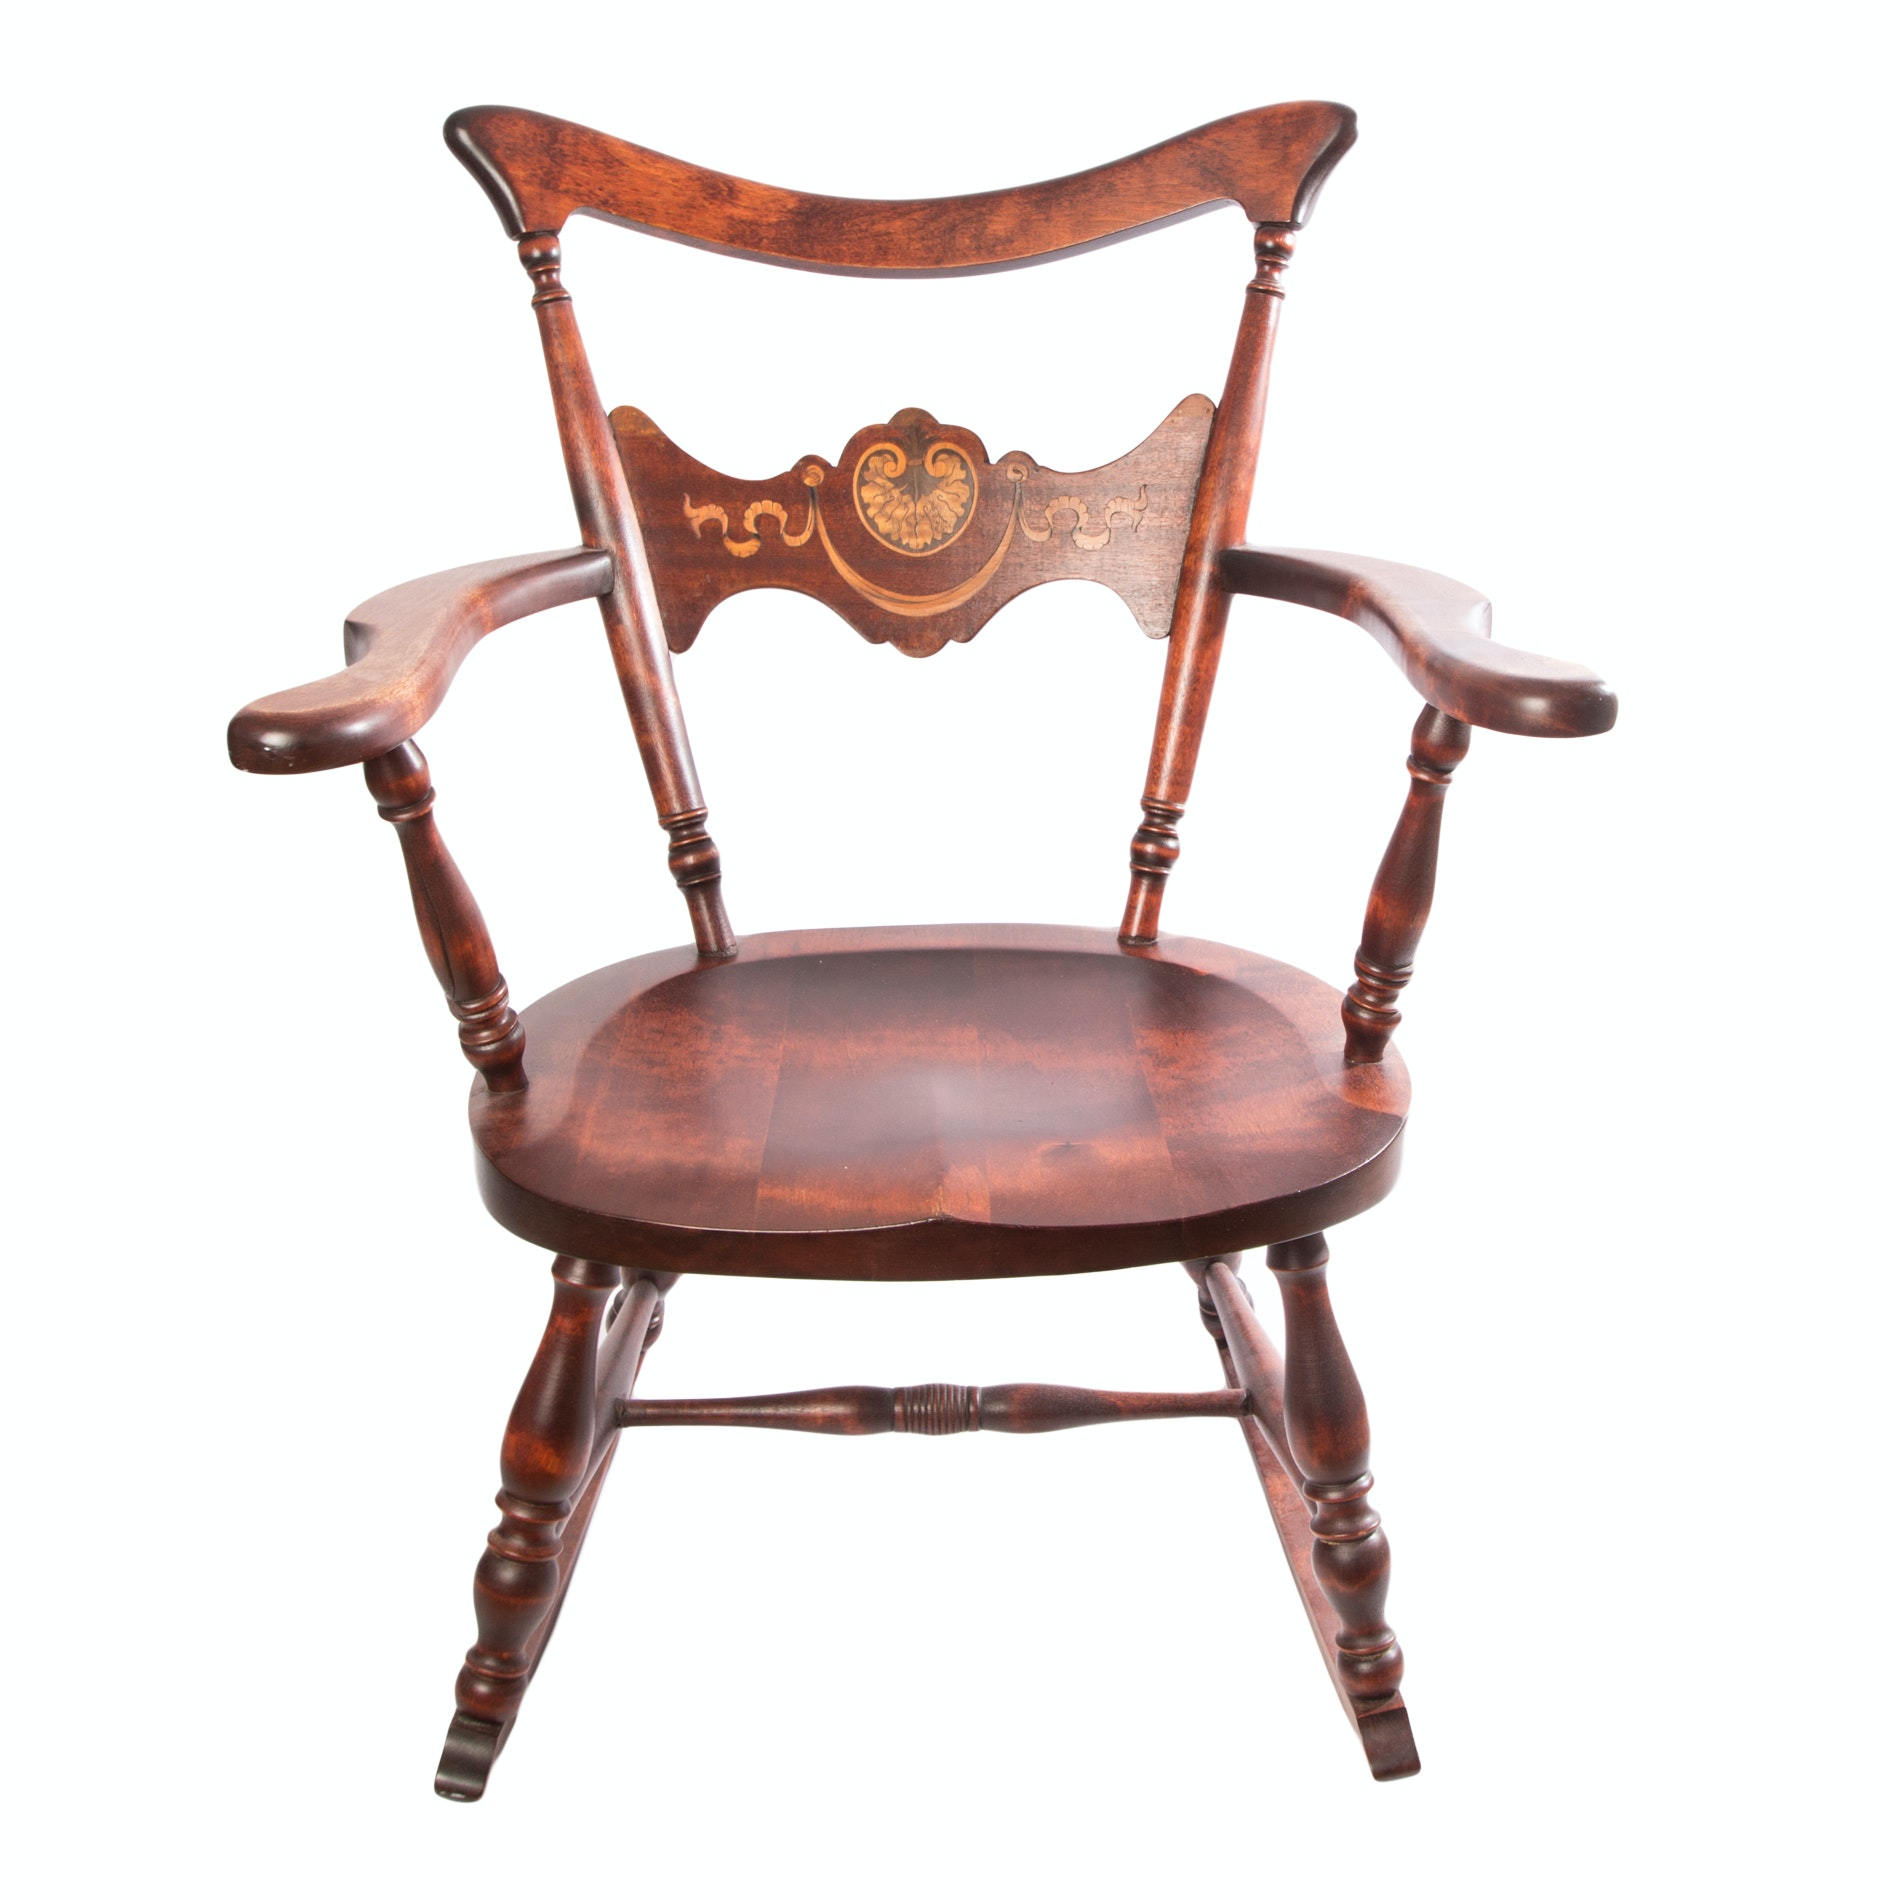 Early 20th Century Mahogany Rocking Chair